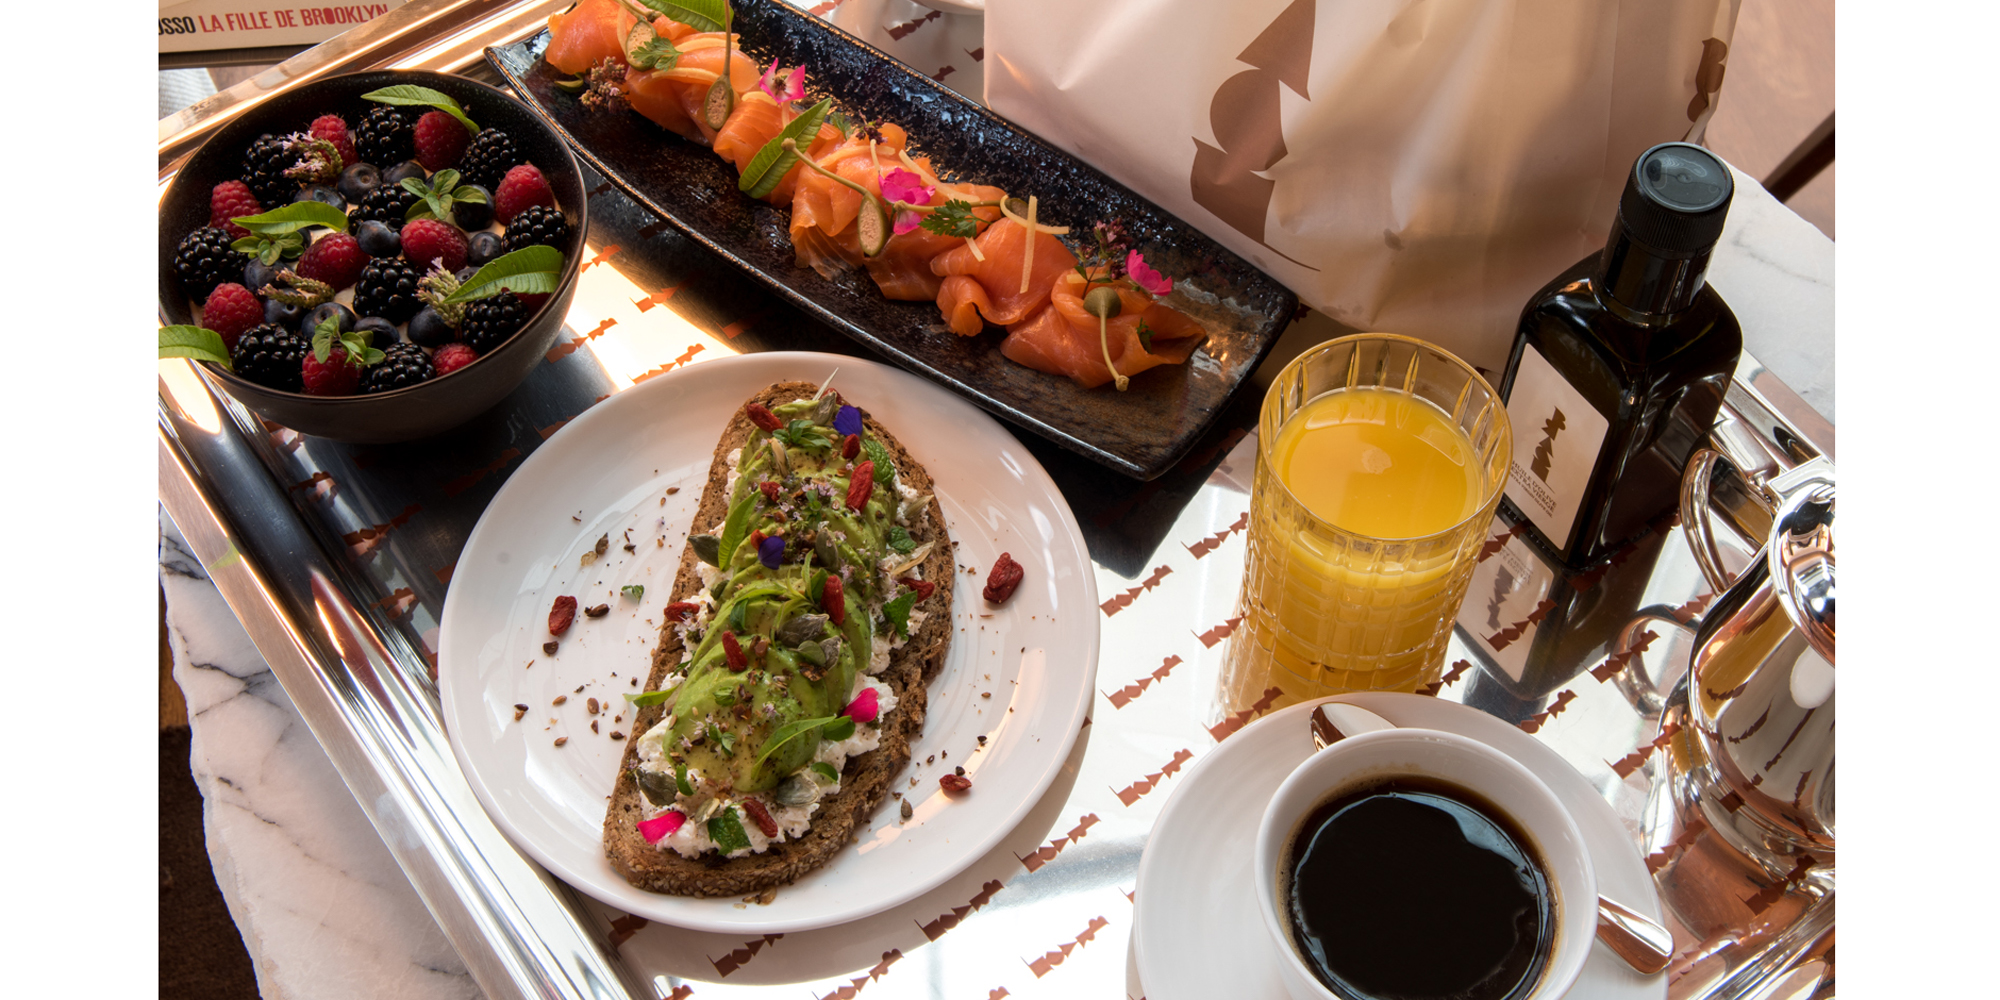 Brunch Hôtel Brach (75016 Paris)